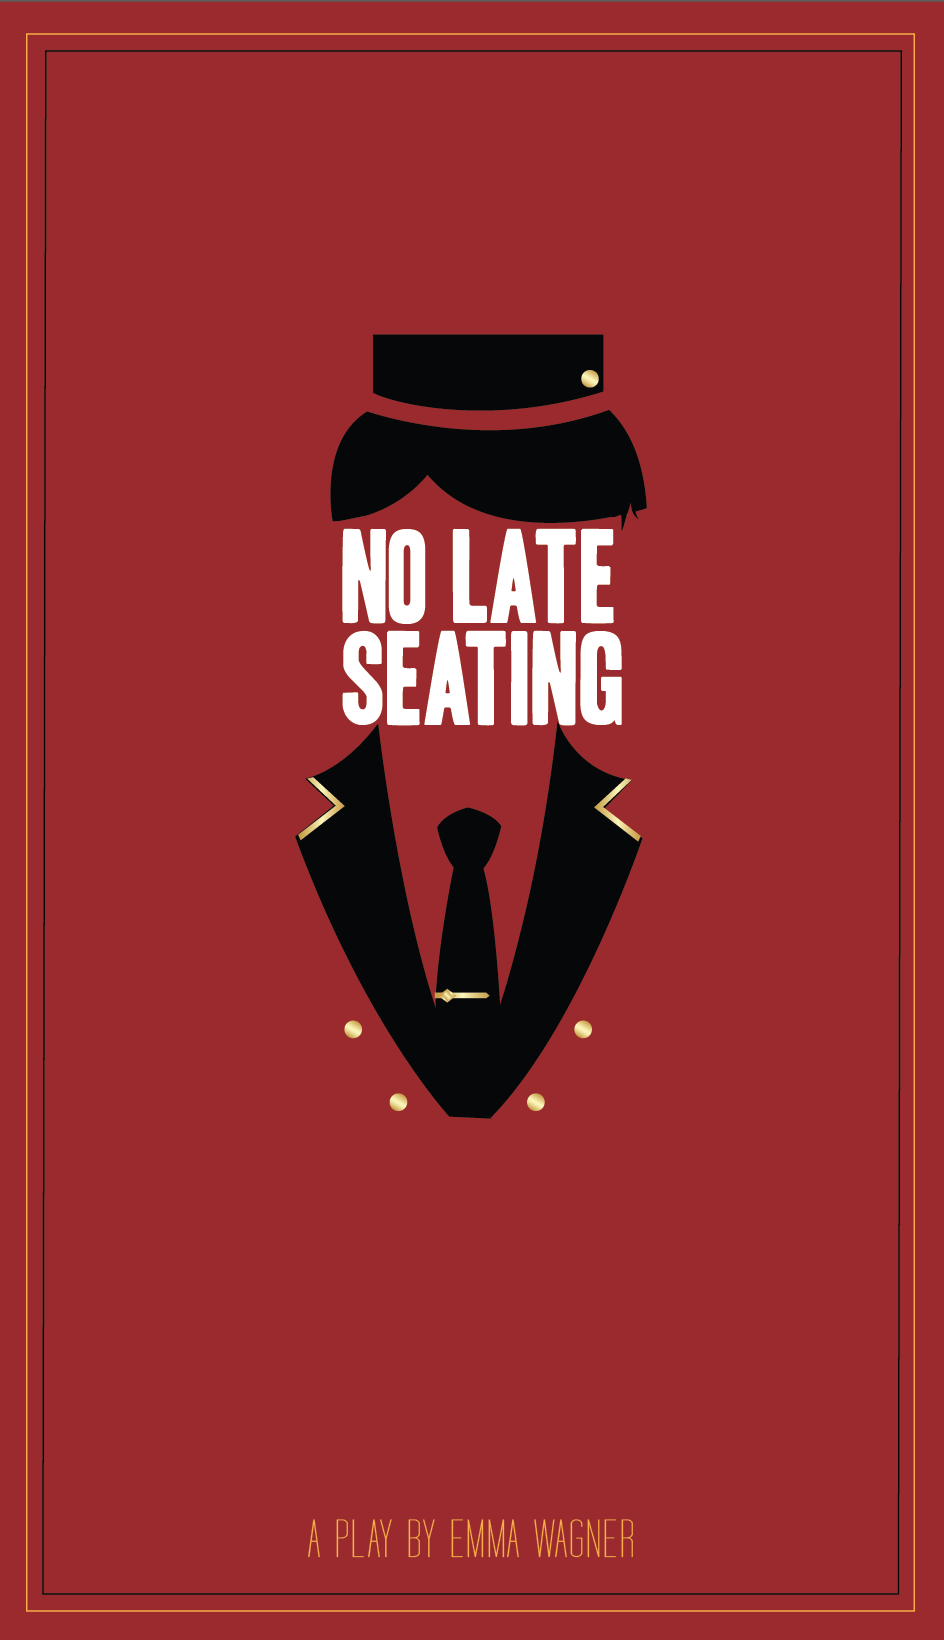 No Late Seating